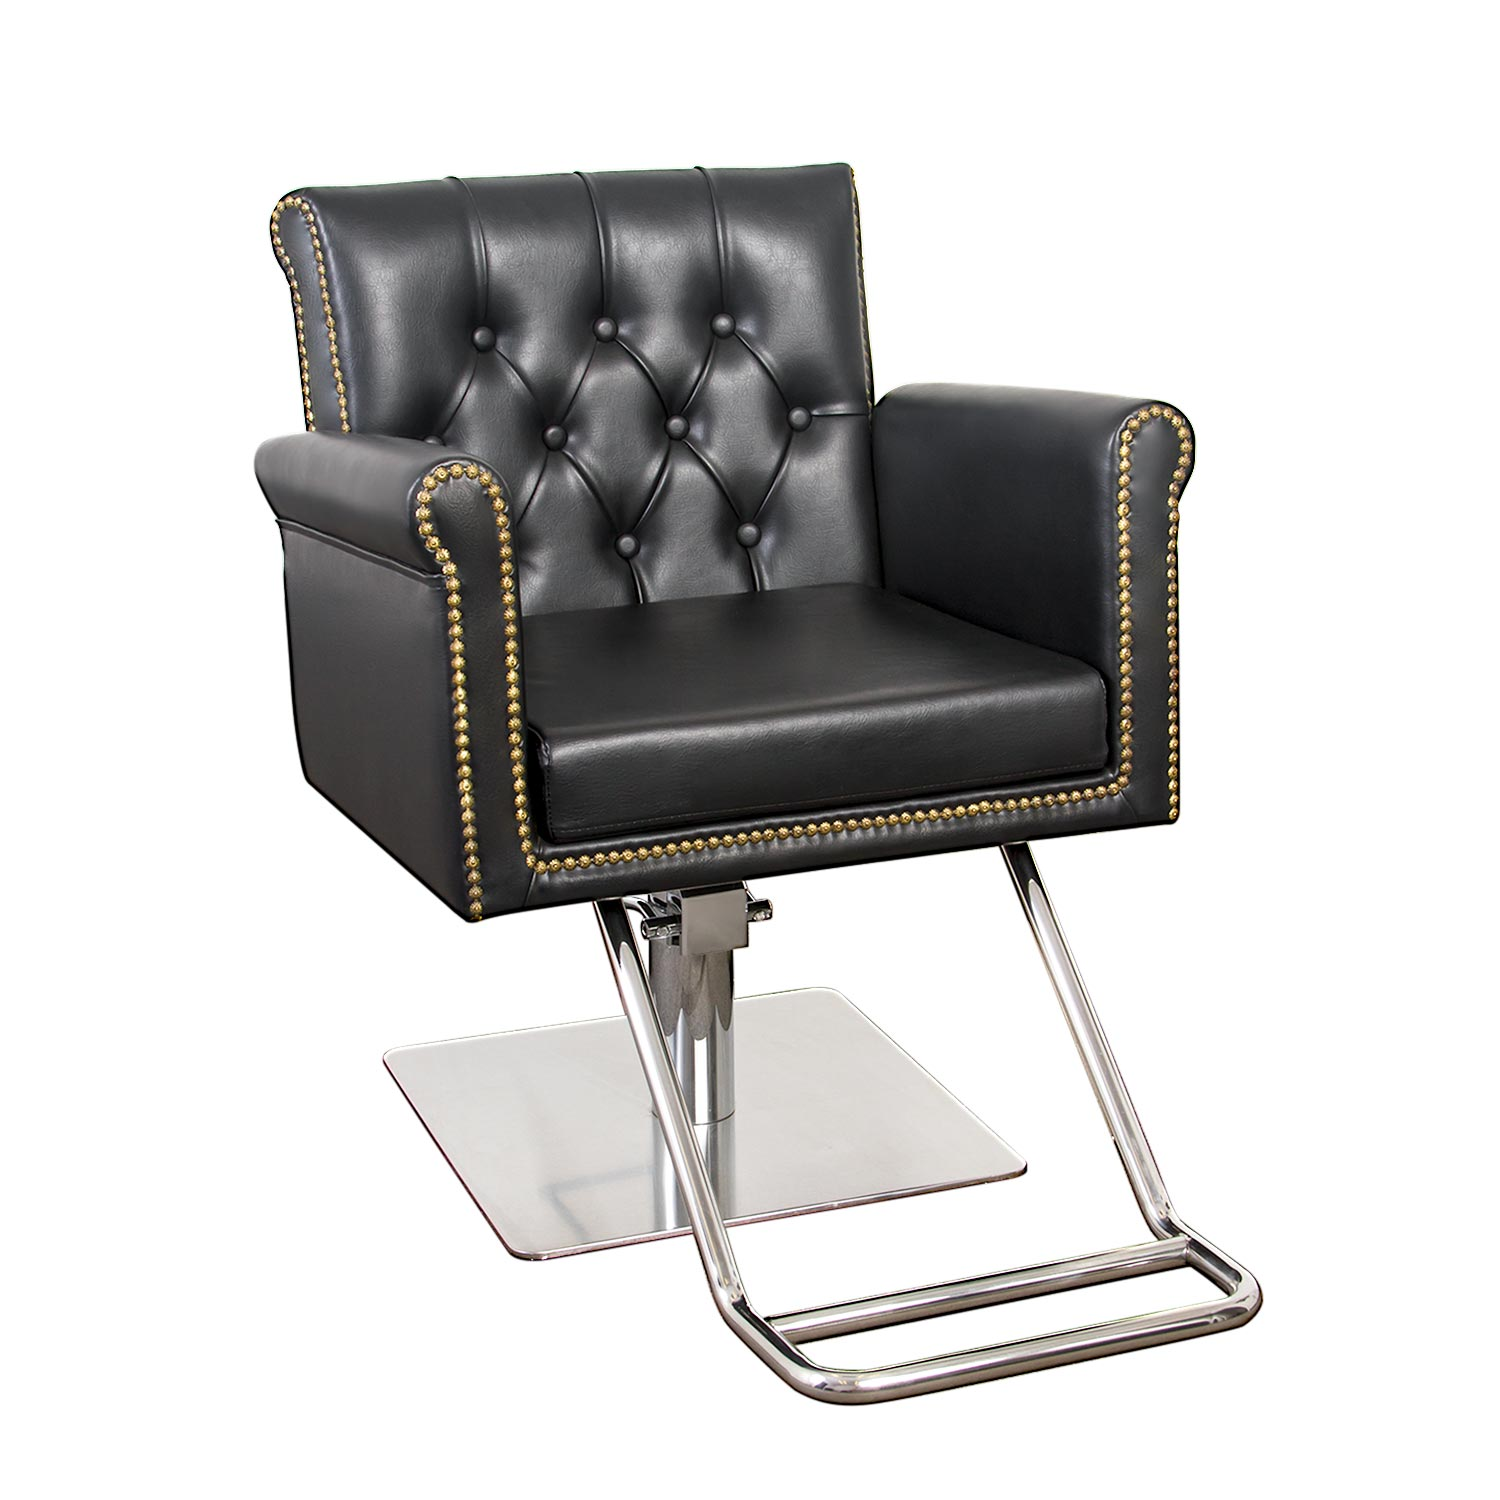 Winston Hair Chair with Nailhead Trim and Tufting  main product image